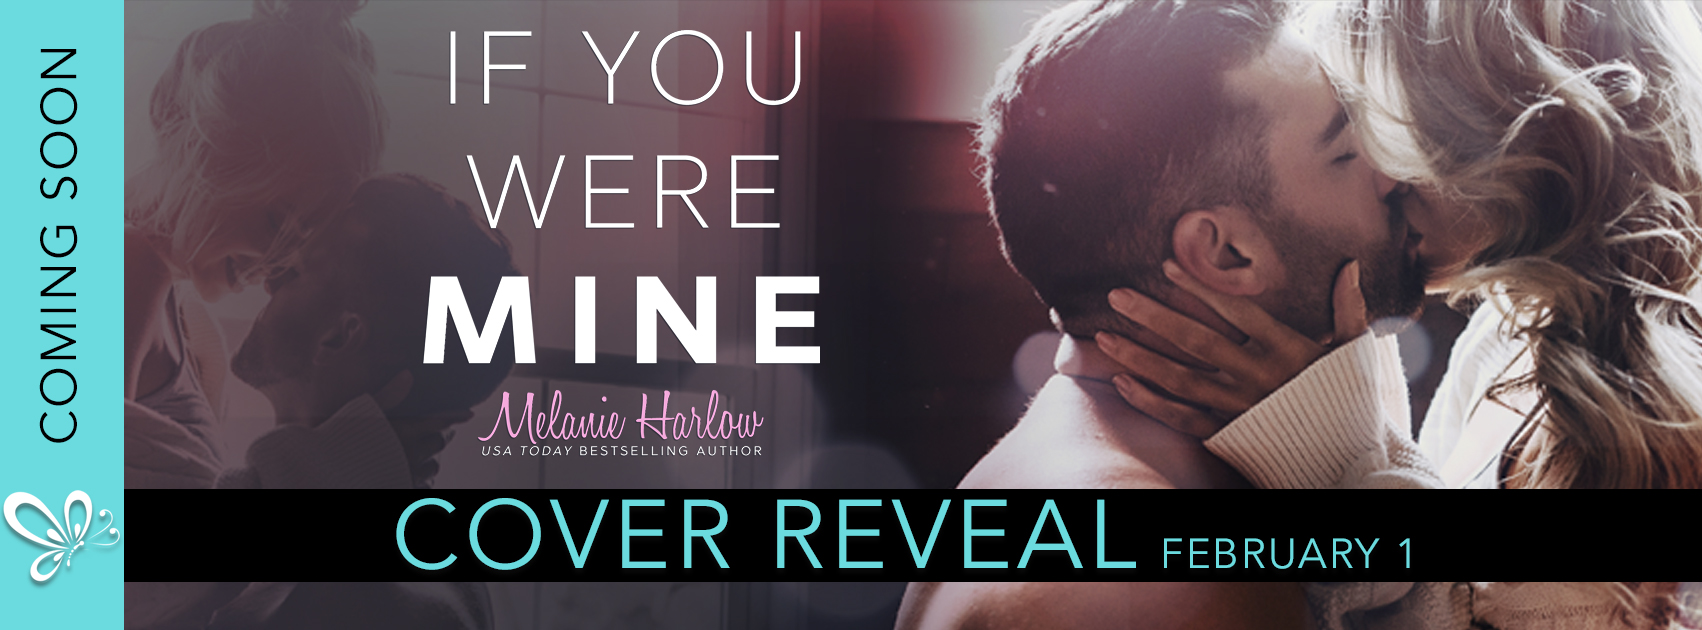 Cover Reveal: If You Were Mine by Melanie Harlow